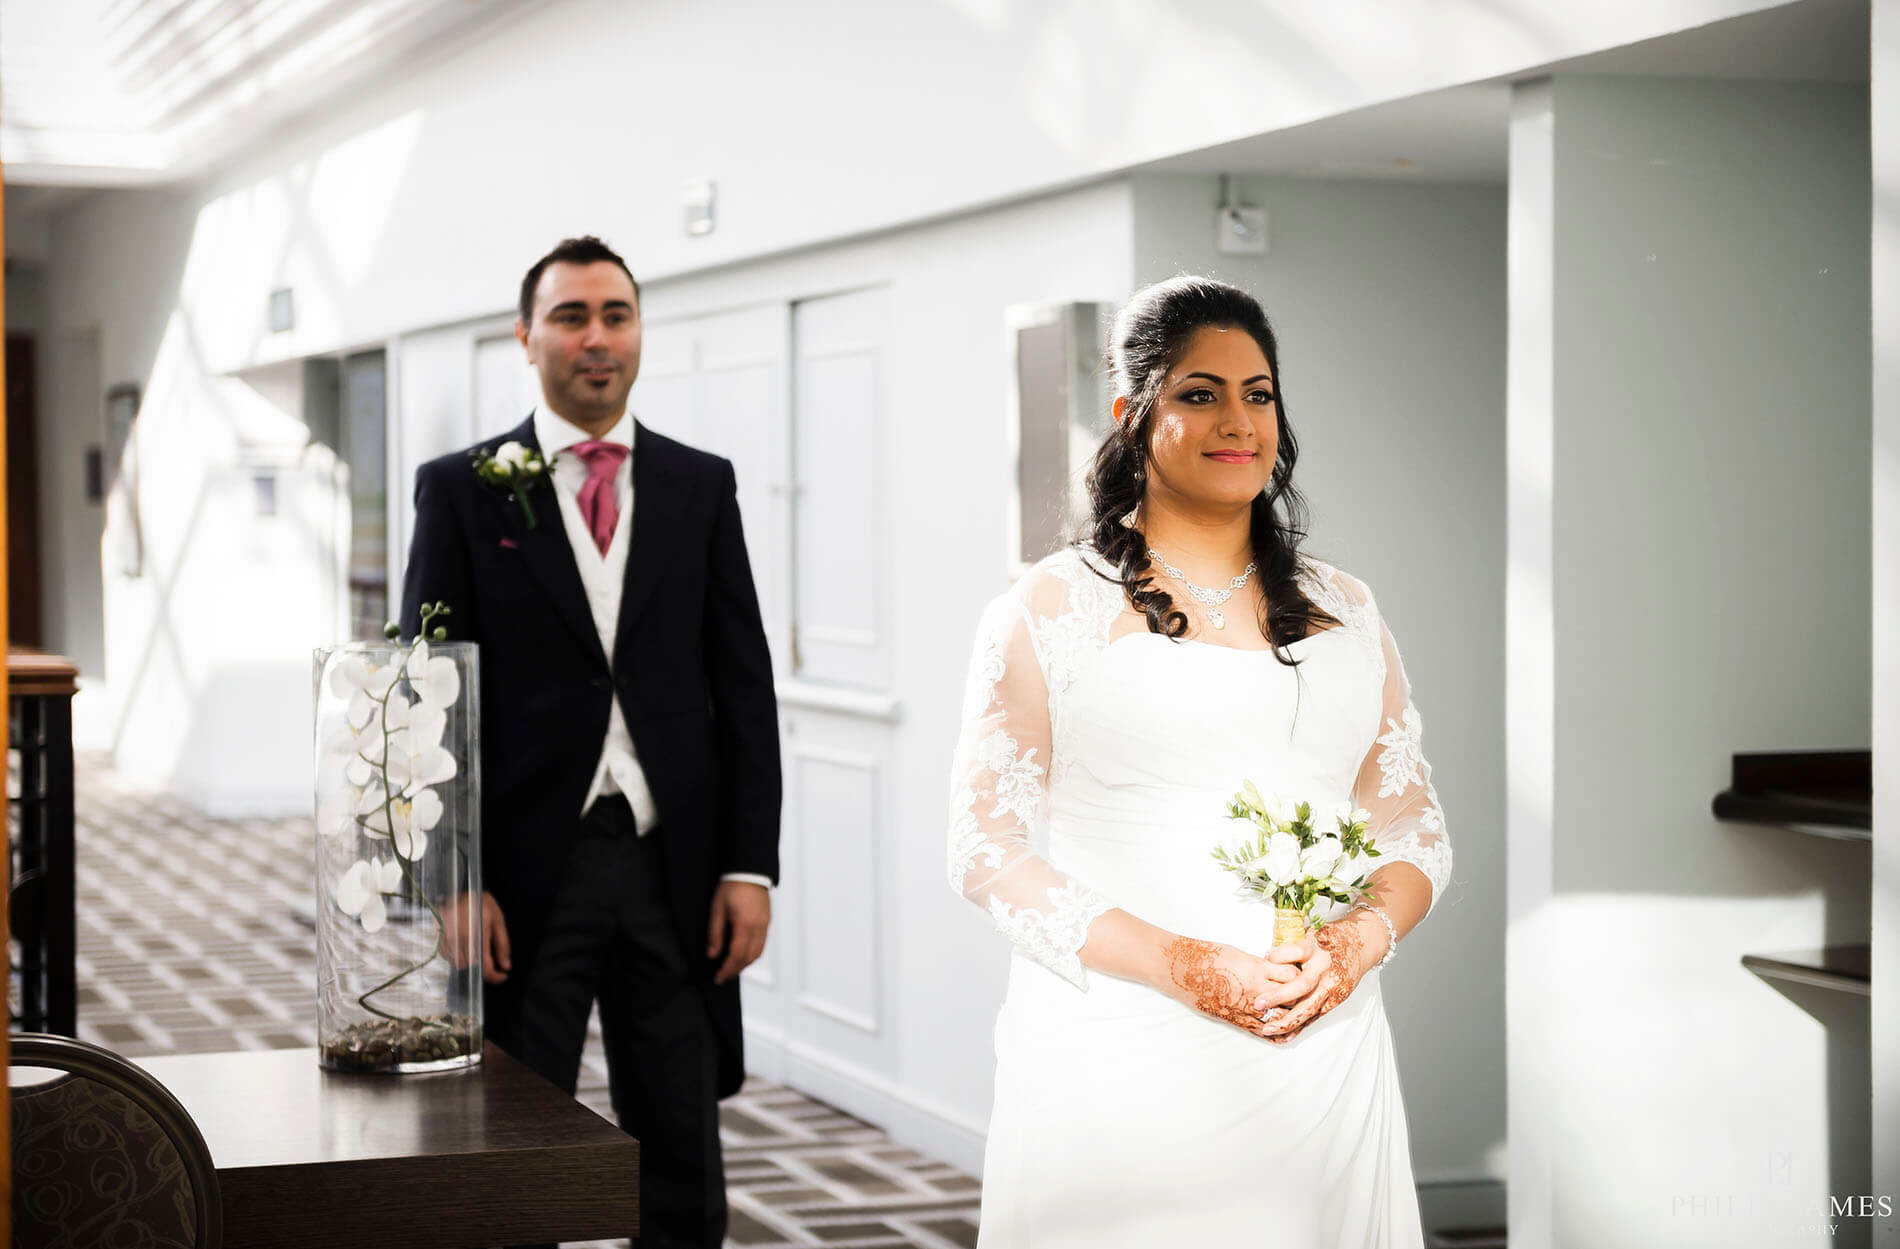 Birmingham Registry Office - Wedding Photography Birmingham, Solihull, Warwickshire, The West Midlands & all over the UK. Wedding Photographer Birmingham - Rabia & Riz